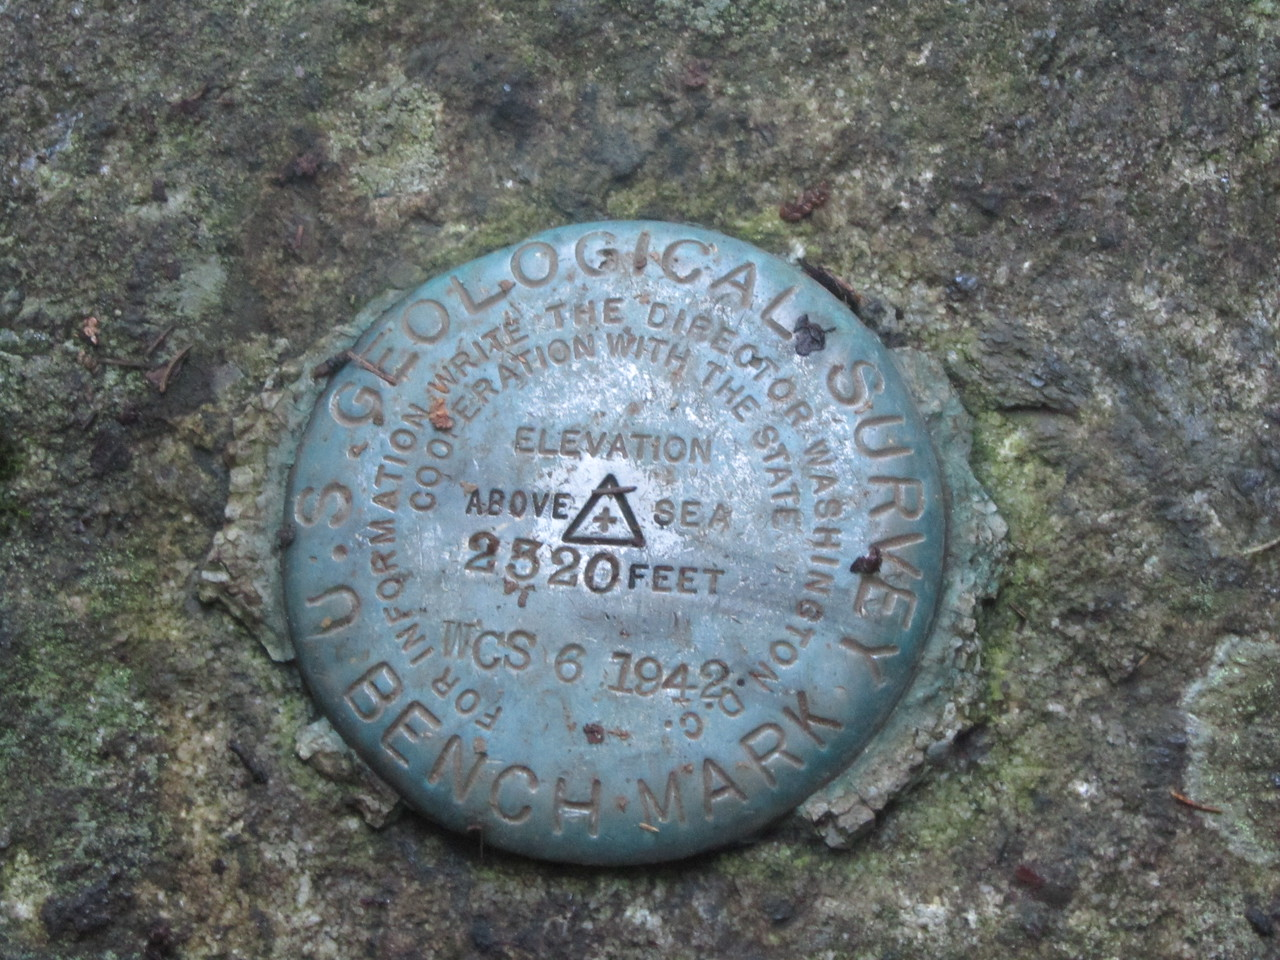 The USGS Survey plug at Dix lake campsite, where we slept Friday night. Dix is the 6th highest peak at 4857 feet so our first trail is over 2,500 foot ascent. Yippee...<br /> <br /> To ascend the highest peak in MI, (Mt Arvon @ 1979 feet) you must make the ascent of nearly 300 feet! Holy Cow, thats almost like Mount Everest. Bring your oxygen as rescue helicopters cannot fly that high in the thin air.